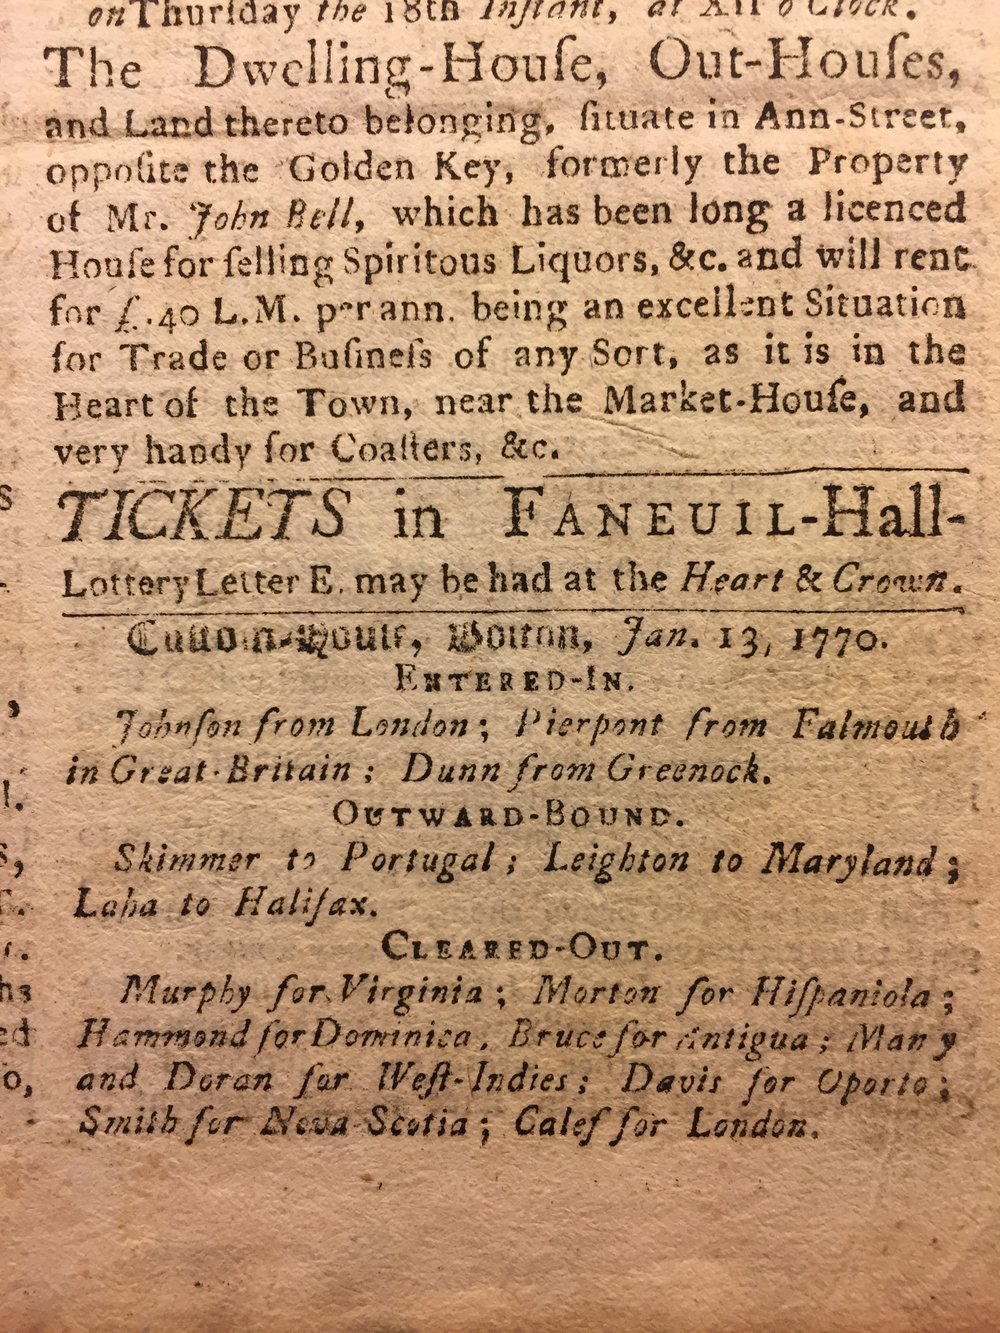 Faneuil Hall lottery advertisement printed in the Boston Evening Post, January 15, 1770